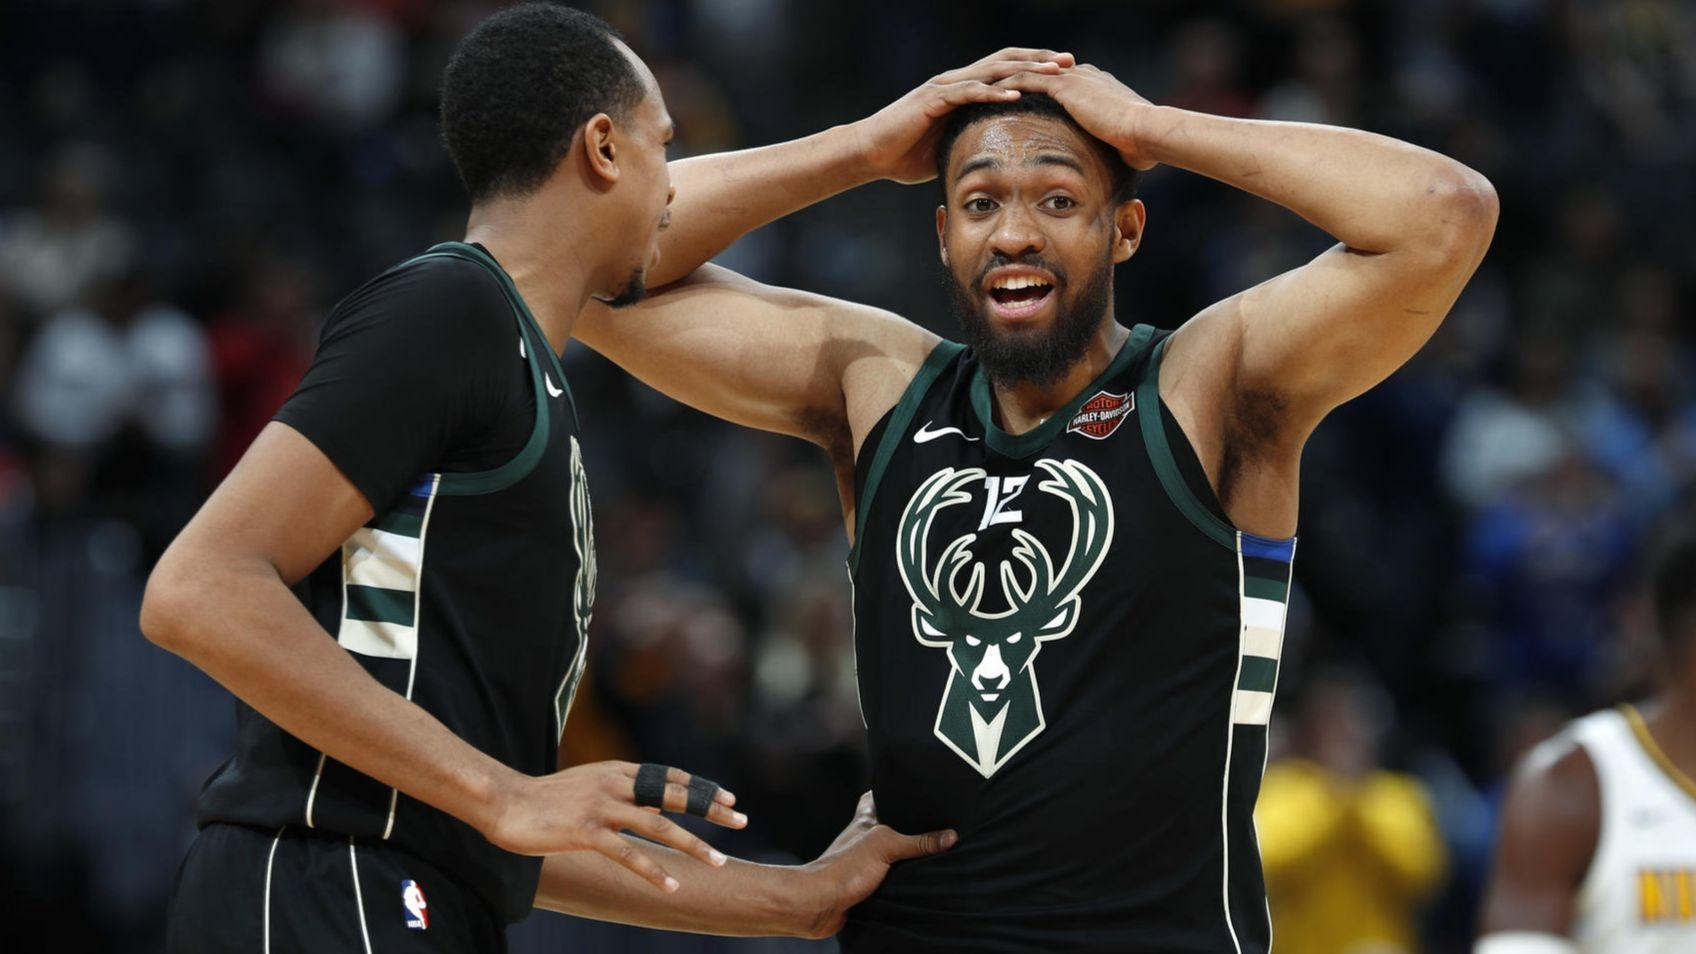 The Bucks and Jabari Parker may be headed for a divorce ... Jabari Parker Nba Draft